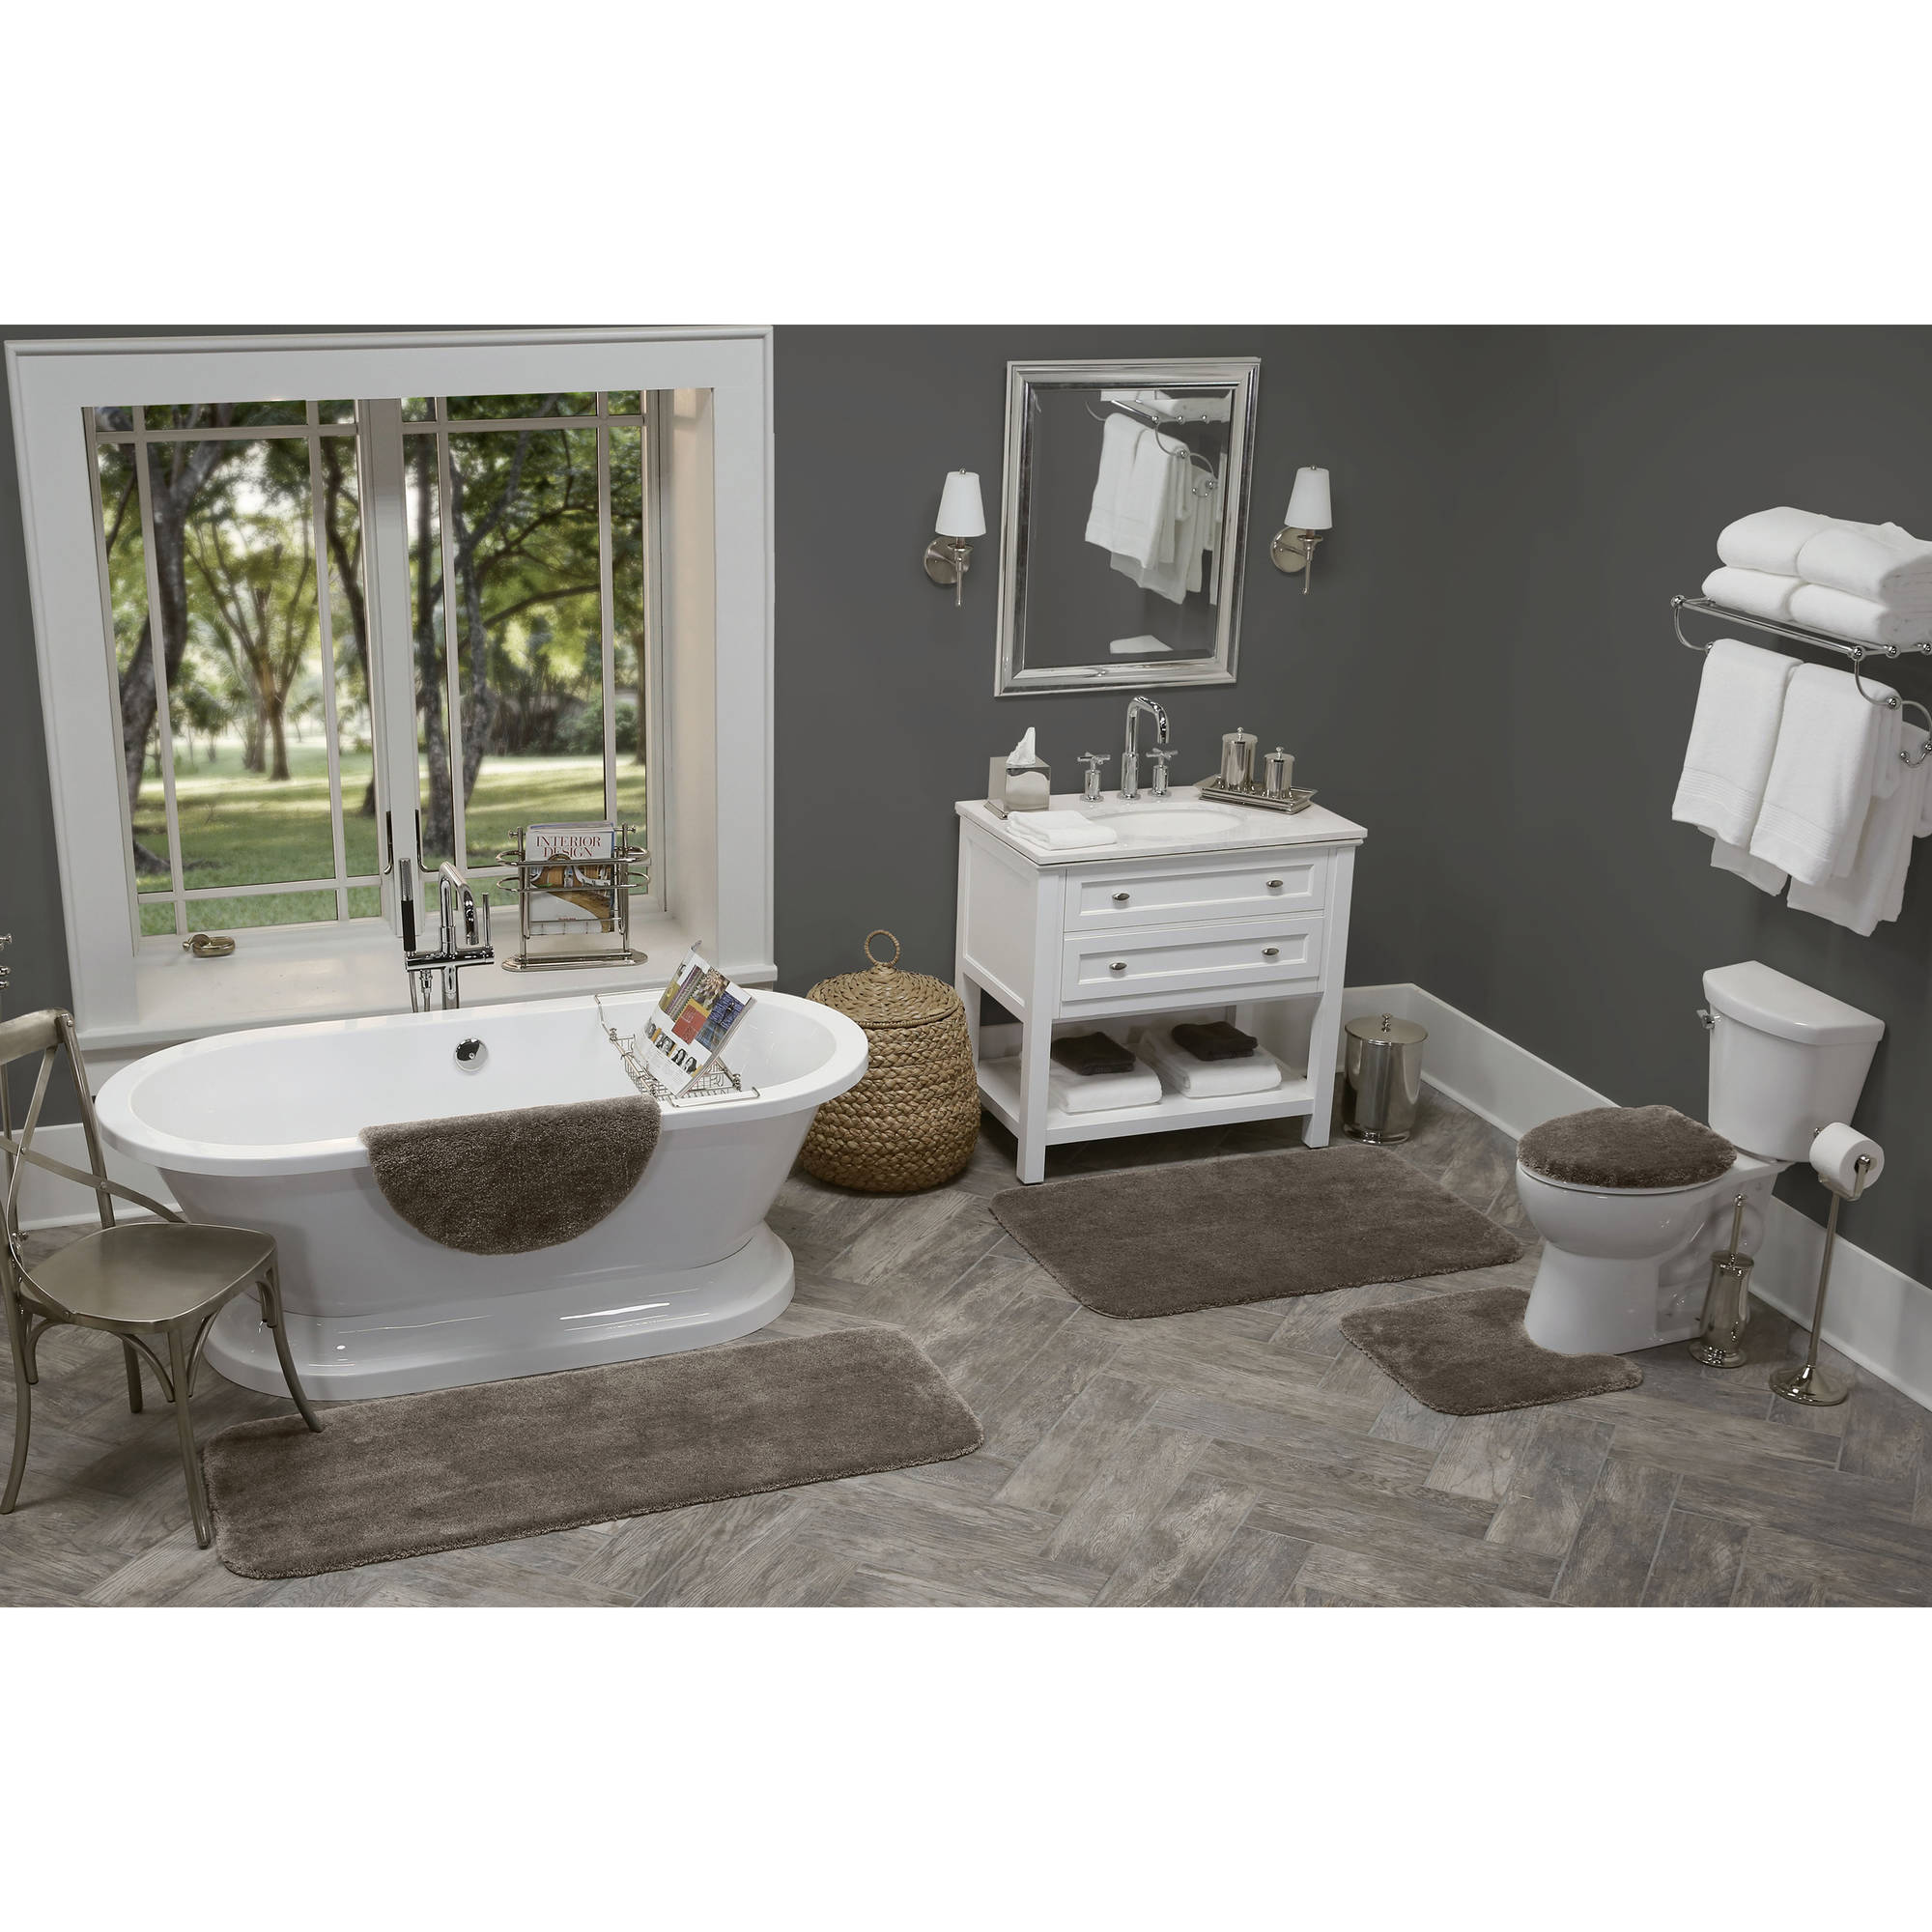 Better Homes and Gardens Extra Soft Round Bath Rug Collection